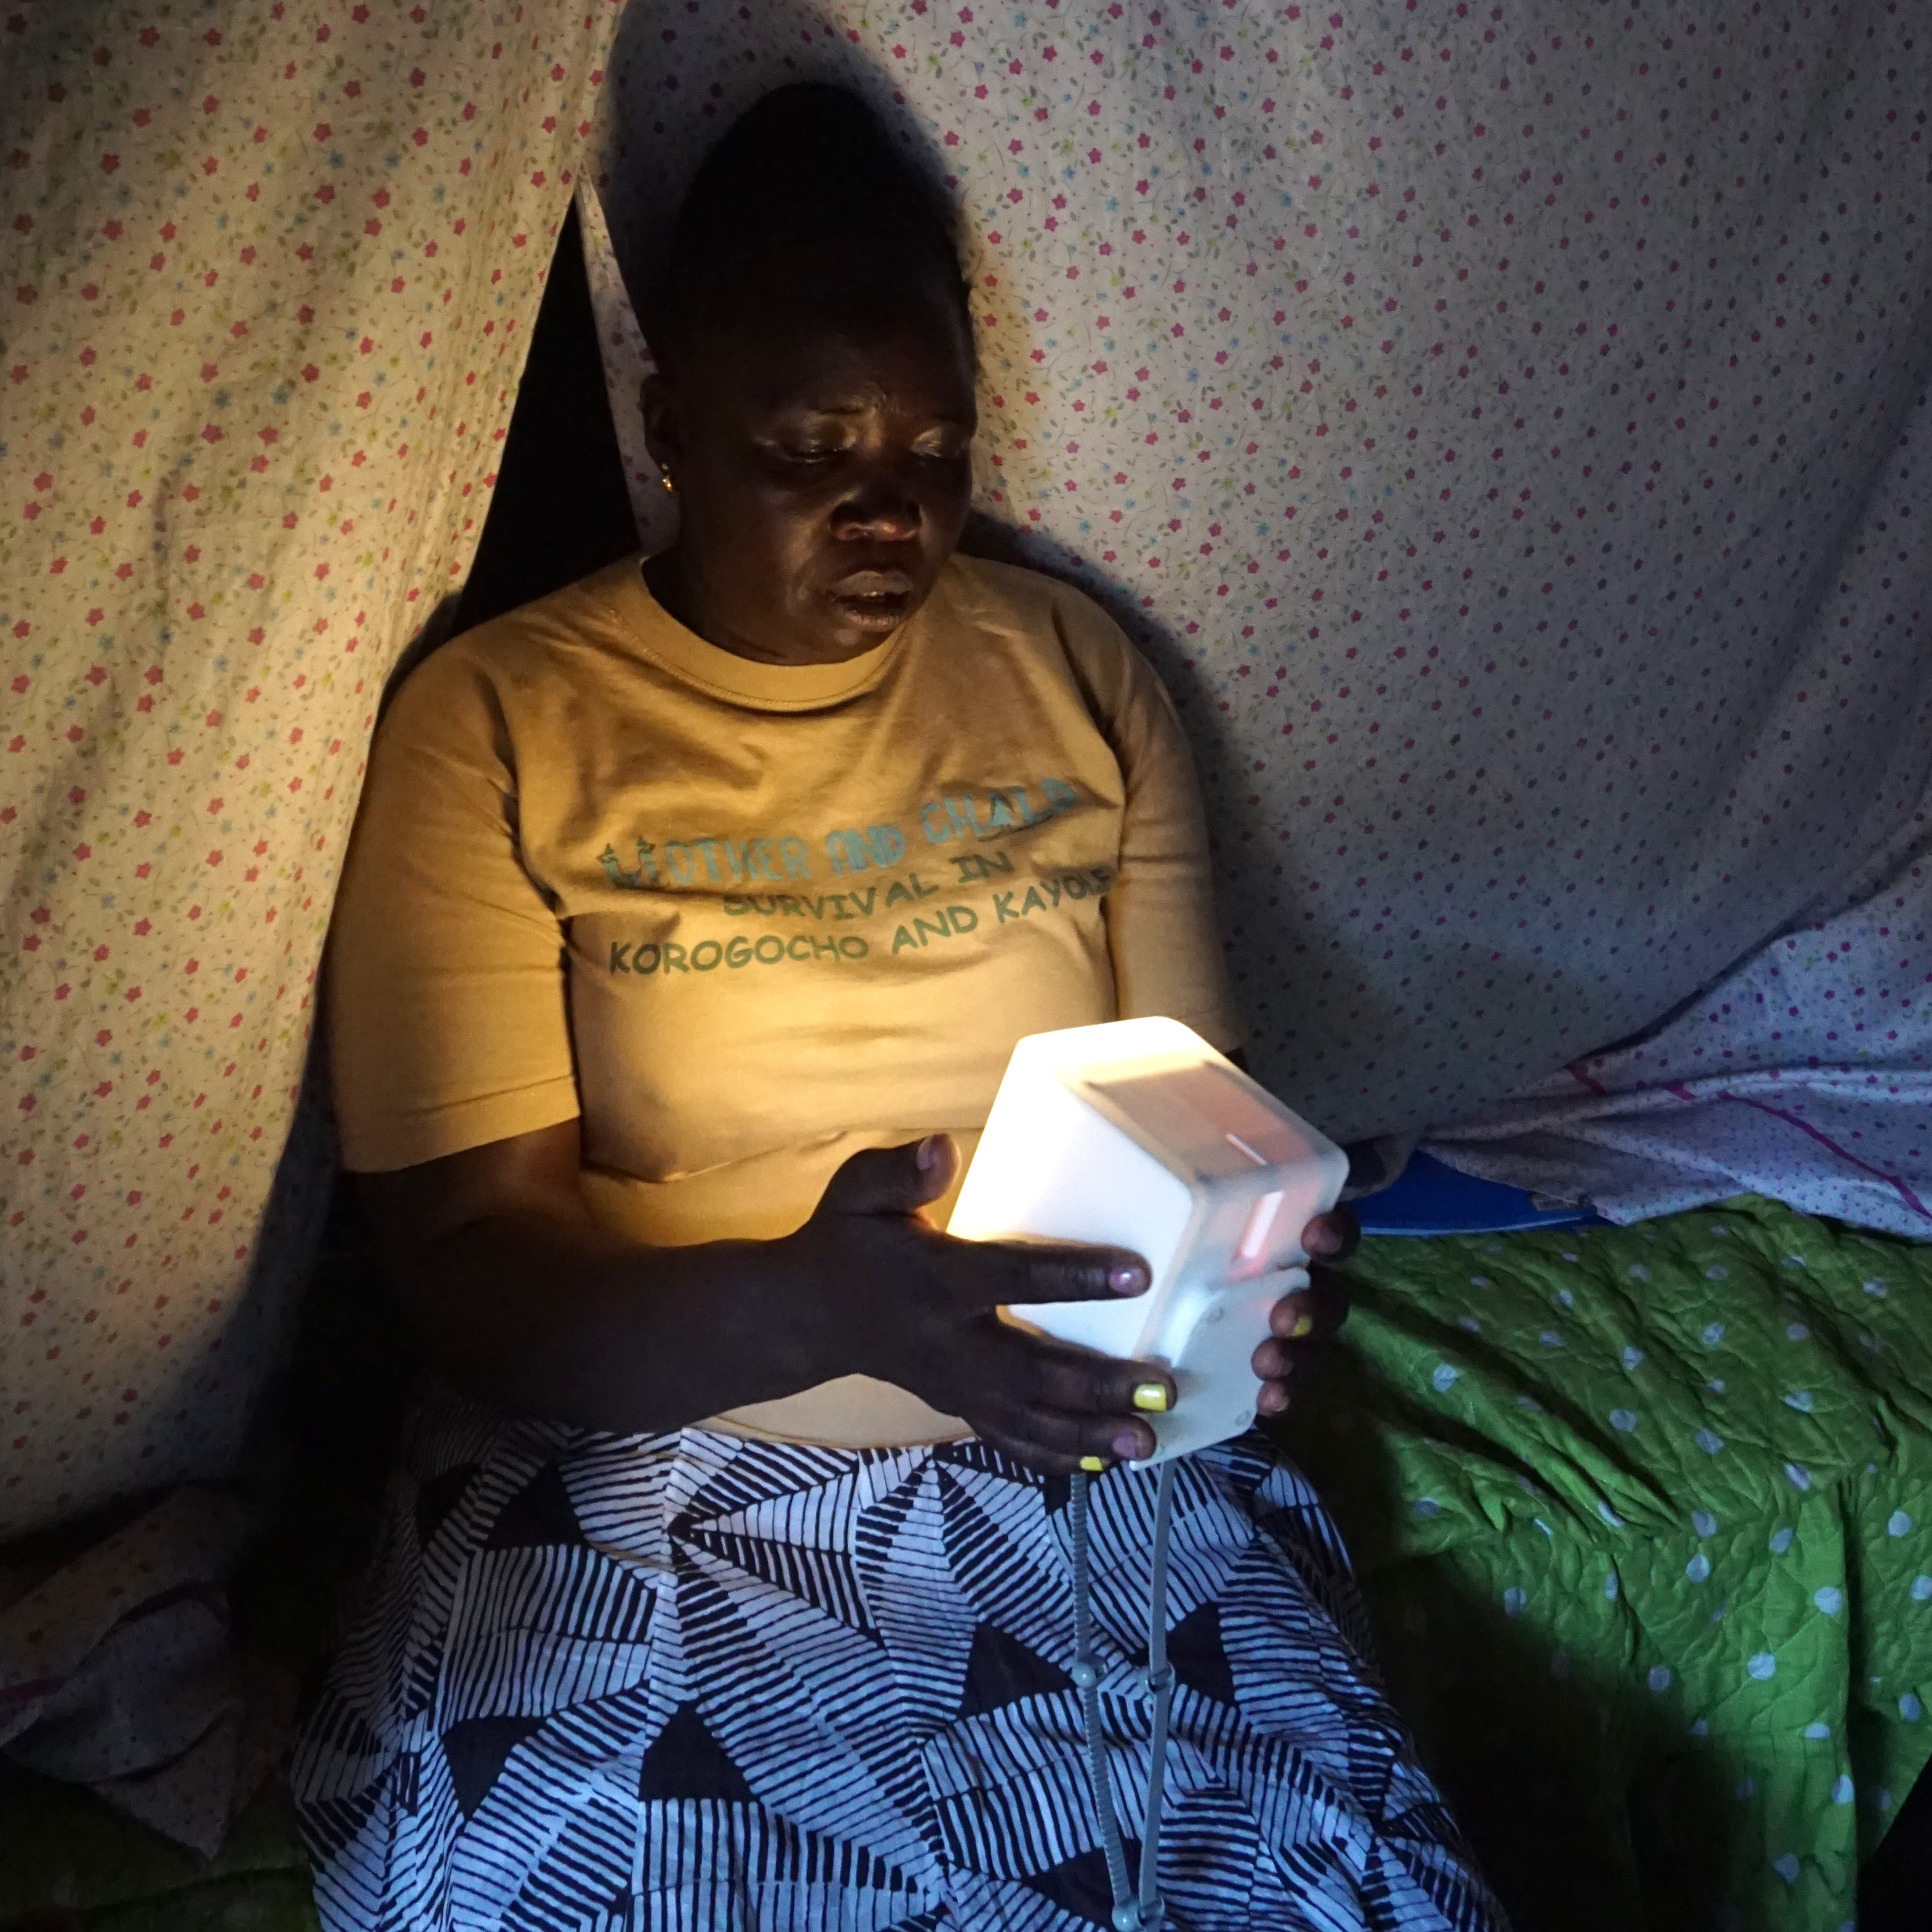 Image of a woman named Rose sitting with a nowlight device.